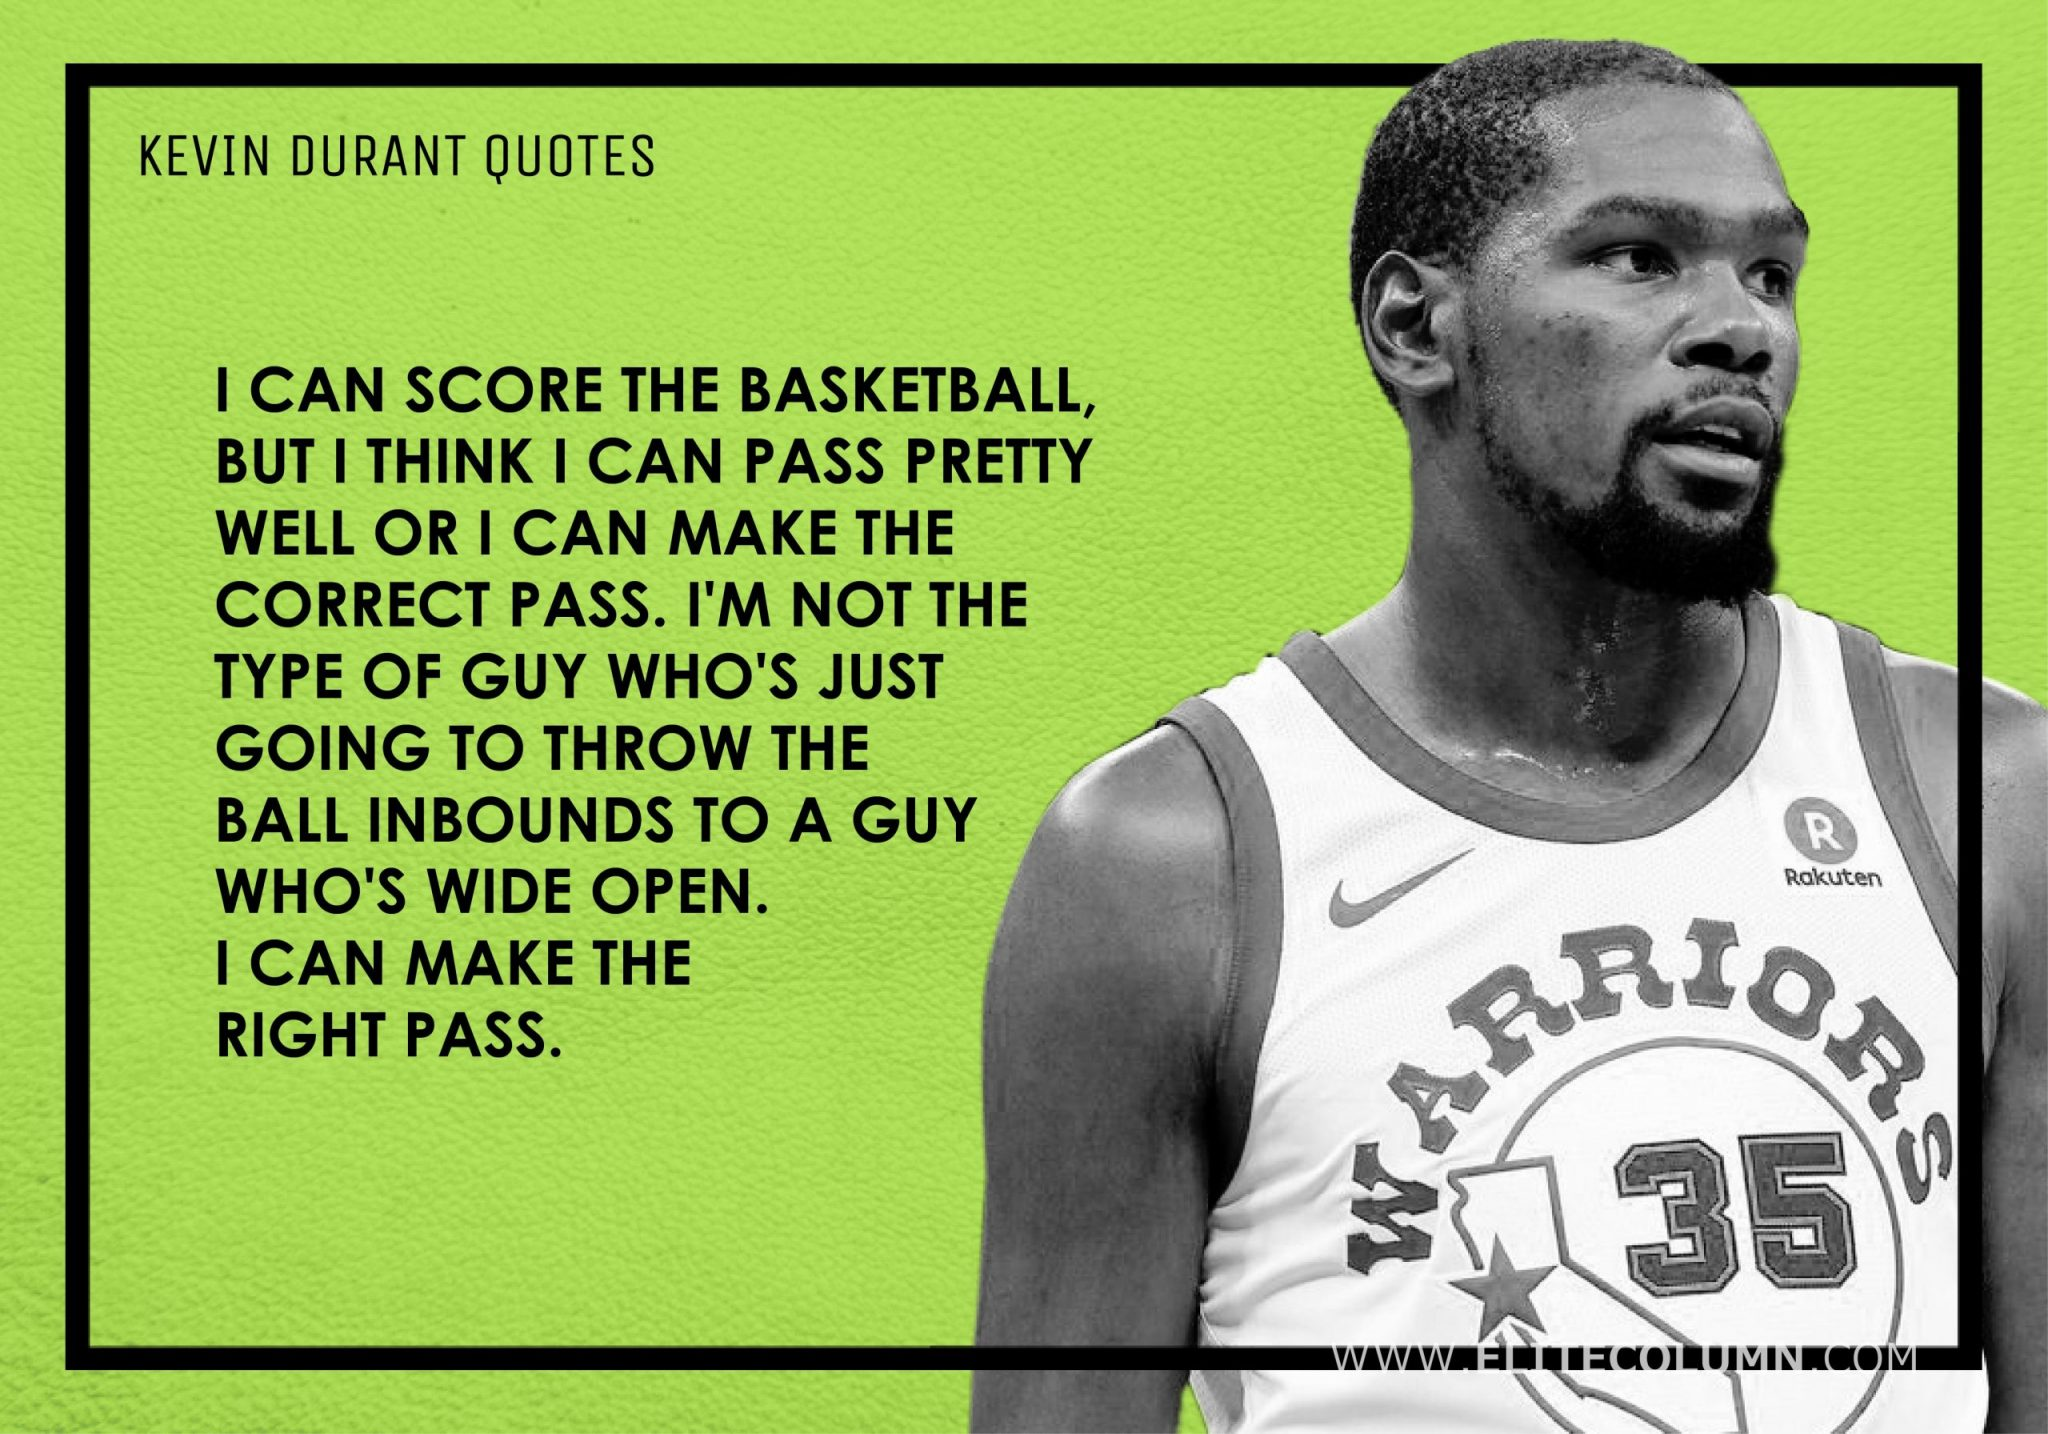 Kevin Durant Quotes (11)